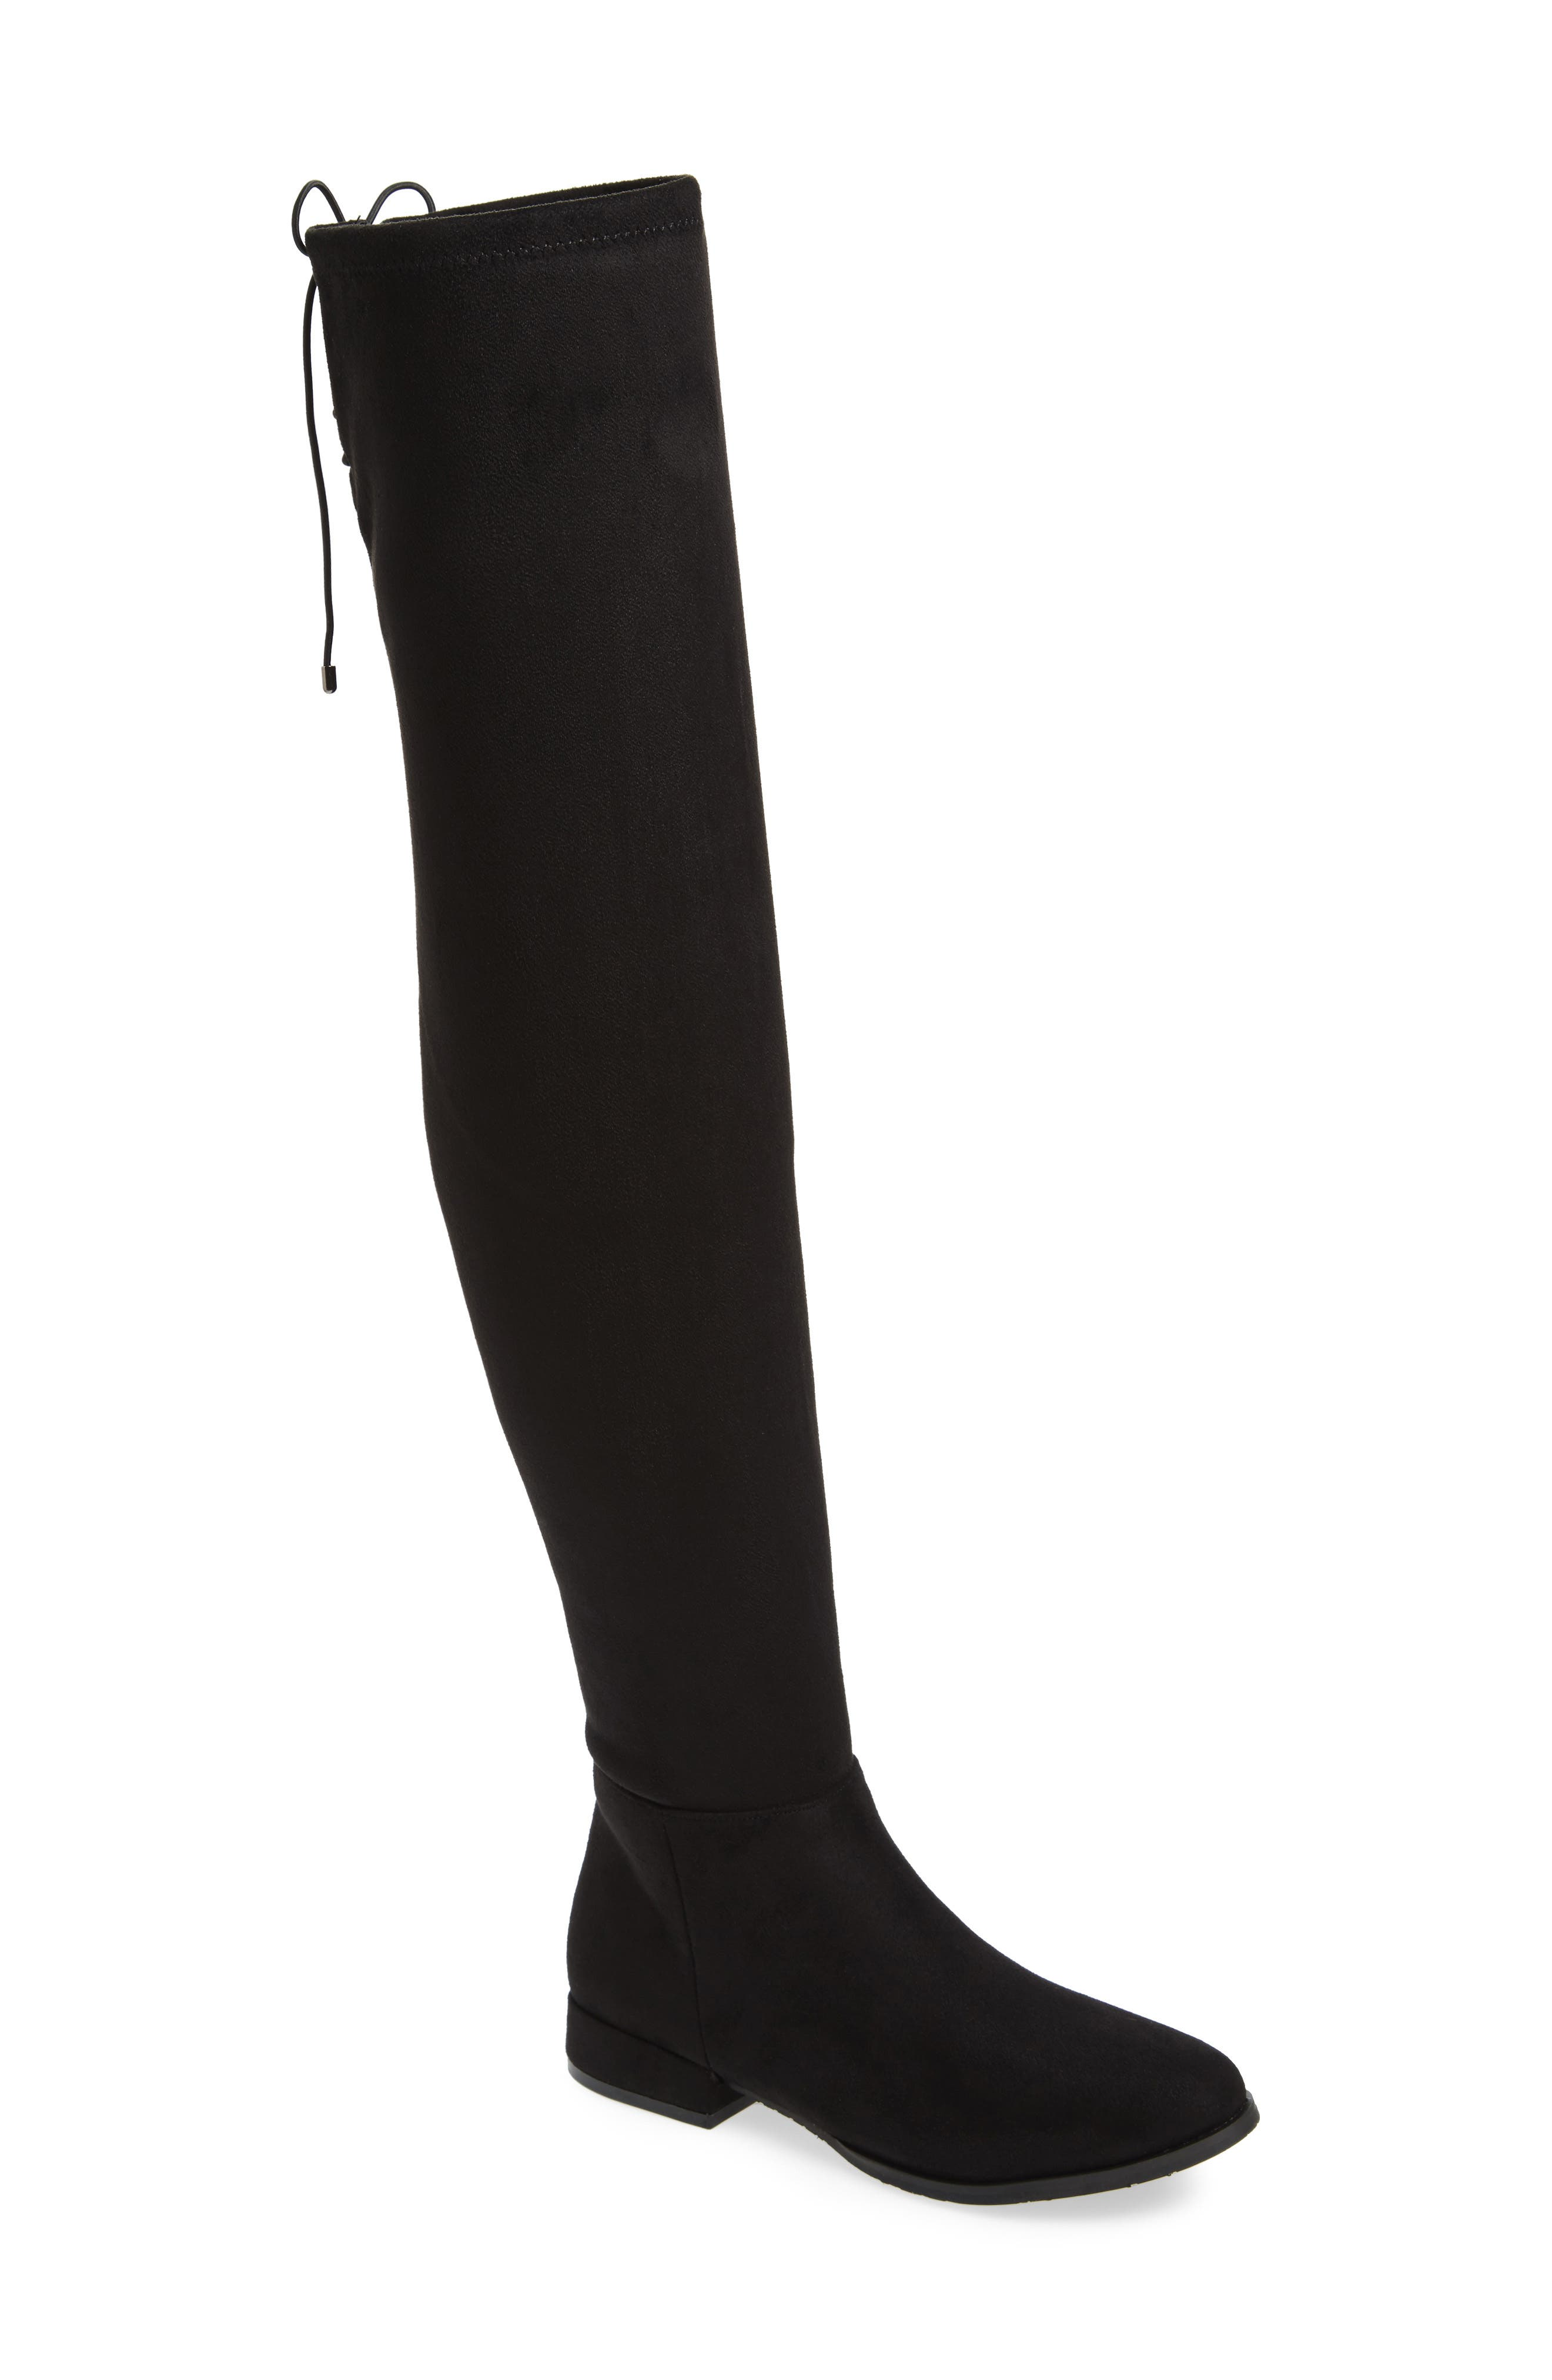 Rashelle Over the Knee Stretch Boot,                         Main,                         color, Black Suede